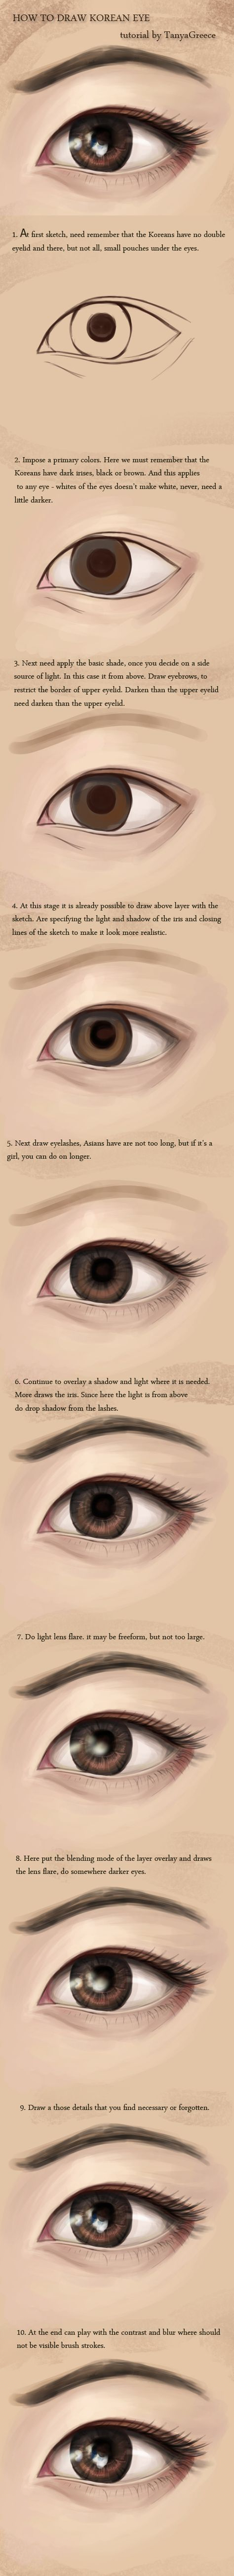 How To Draw Korean Eye By Tanyagreece On Deviantart Eye Drawing Realistic Eye Drawing Drawings